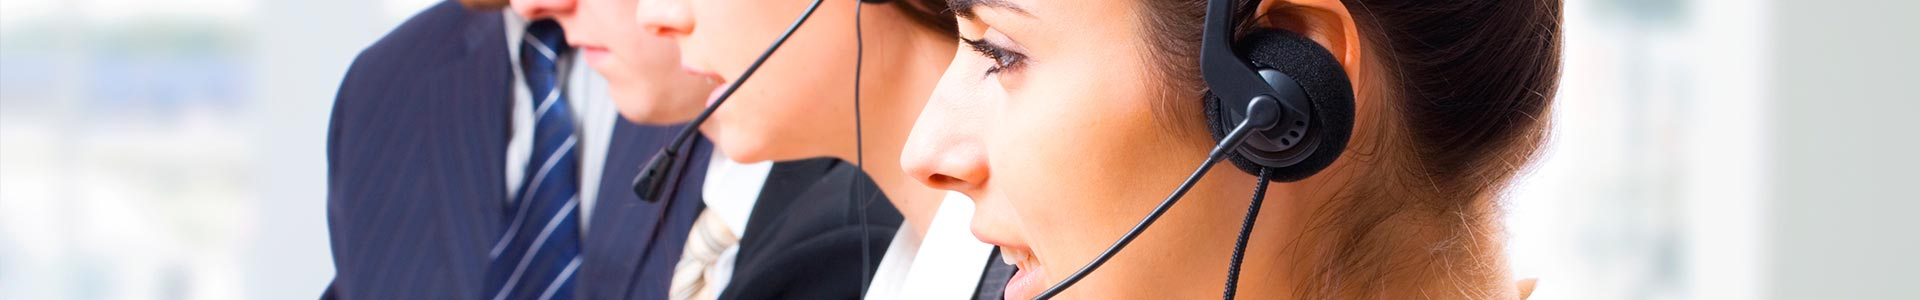 call_center_slider